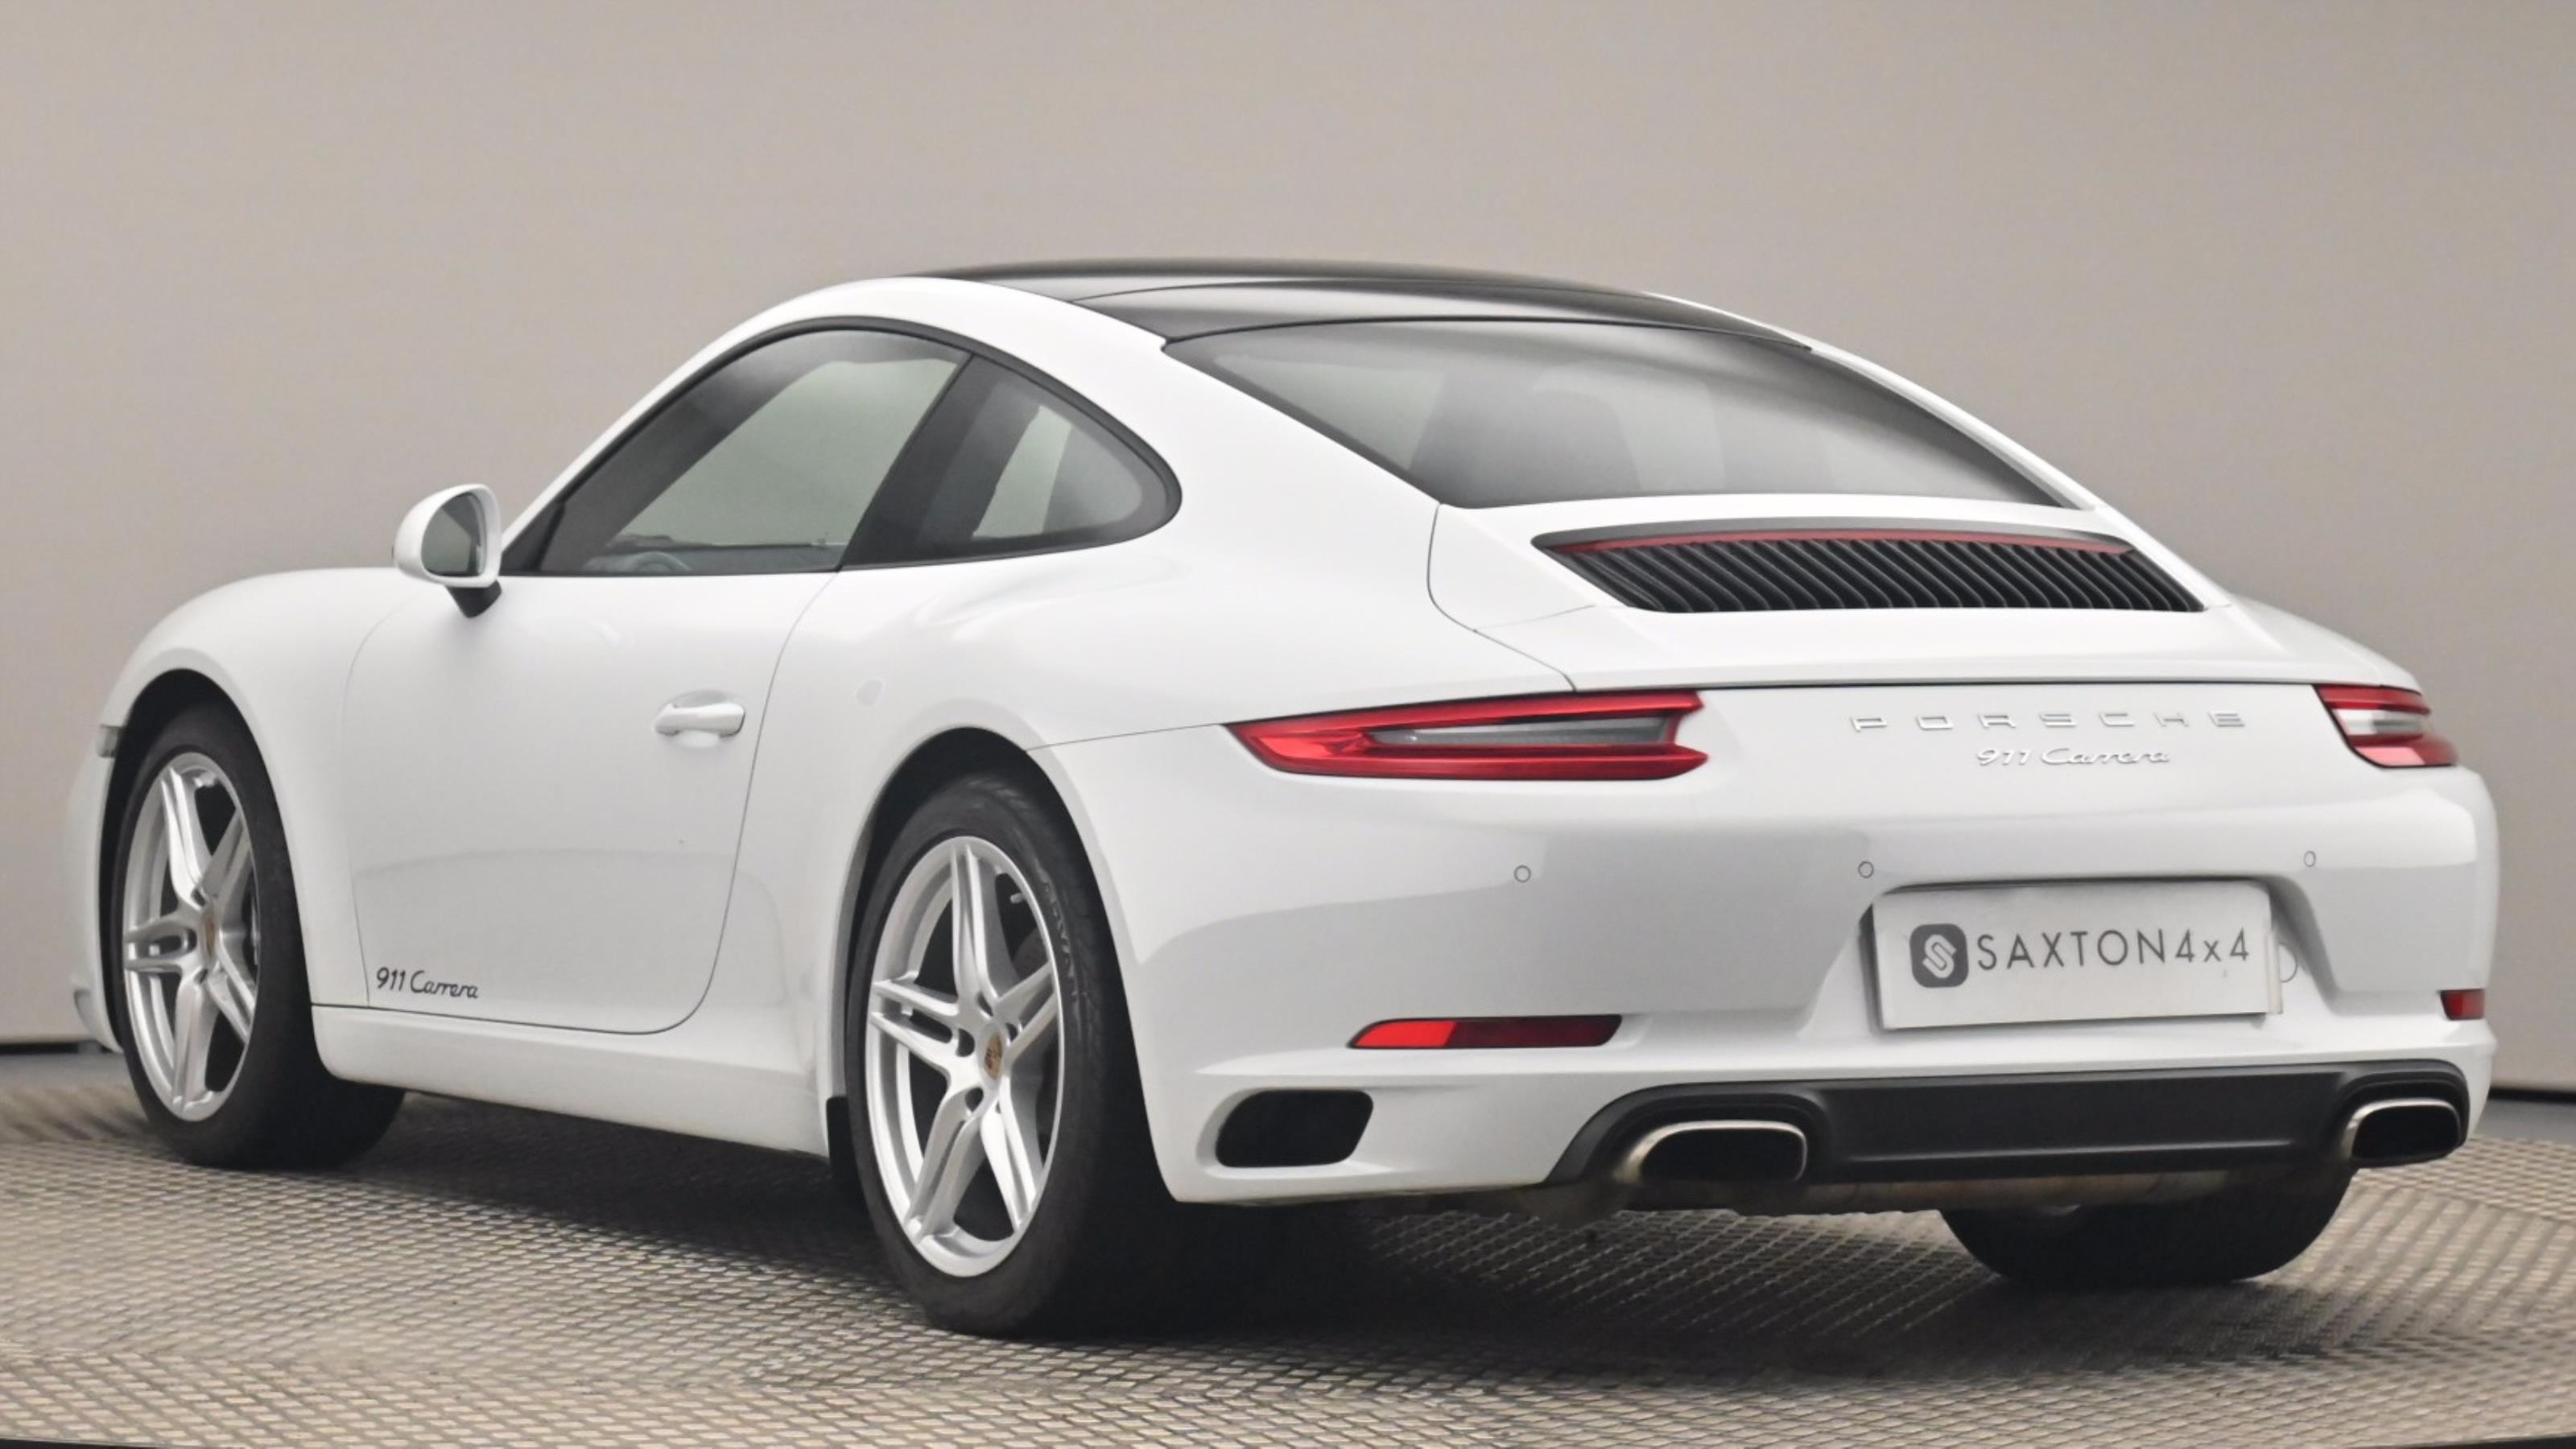 Used 16 Porsche 911 2dr PDK White at Saxton4x4